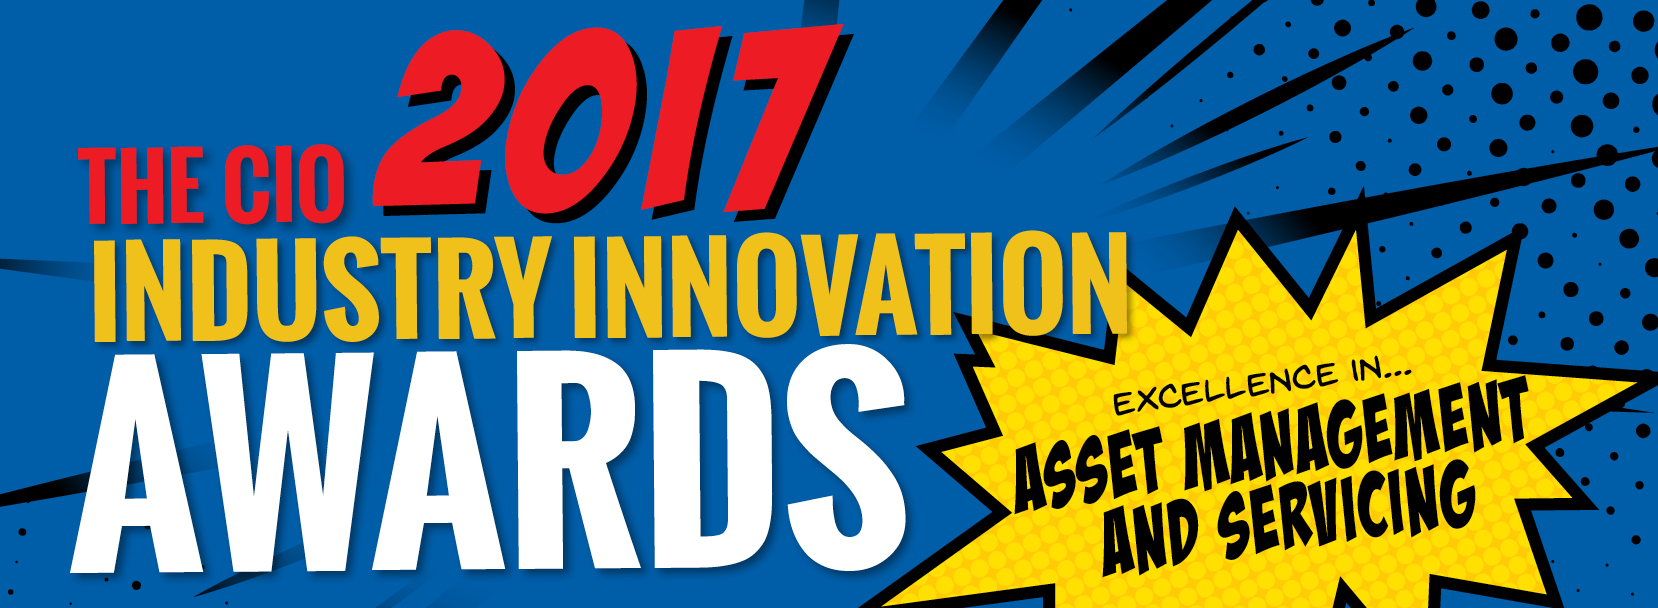 industry-innovation-awards-2016